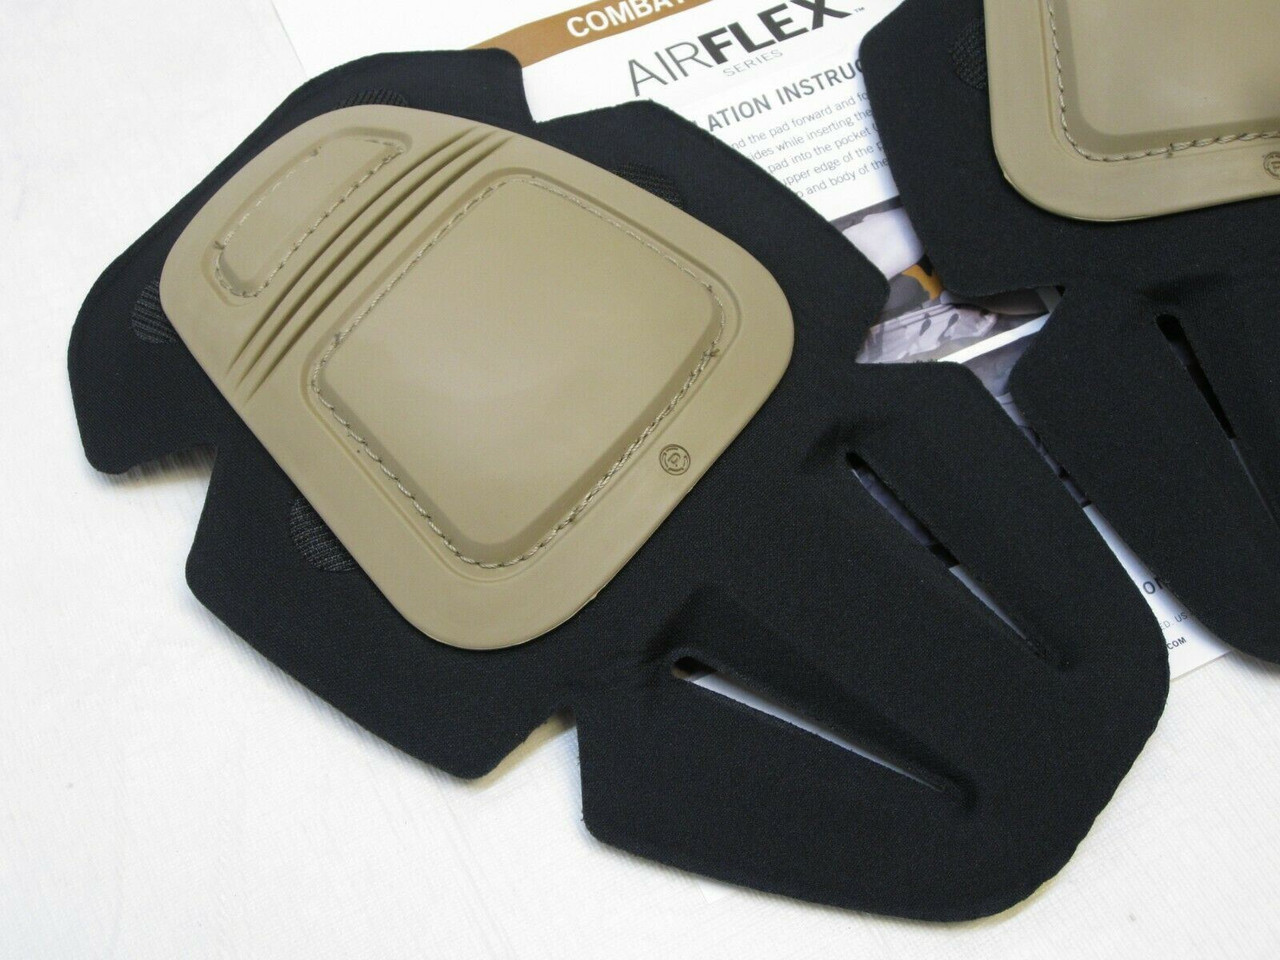 NEW CRYE PRECISION AIRFLEX COMBAT KNEE PAD INSERTS KHAKI/ TAN REMOVABLE PADS